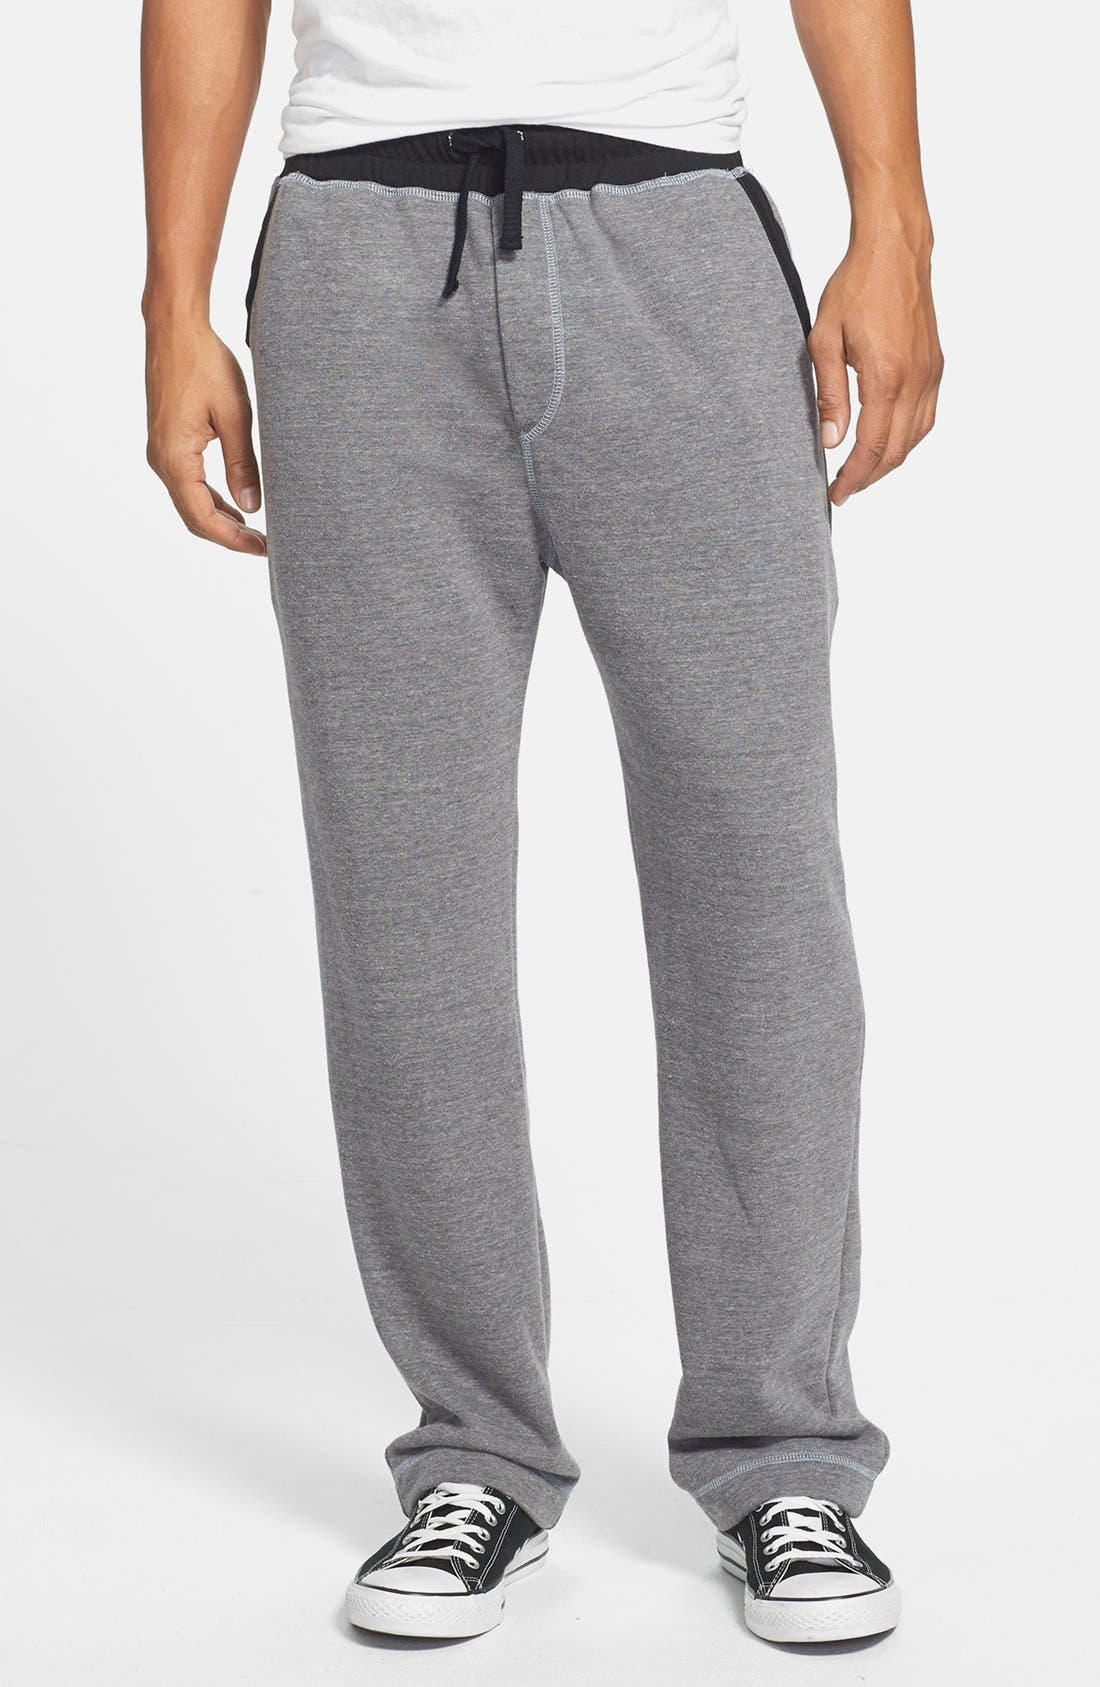 Alternate Image 1 Selected - UNCL Sweatpants